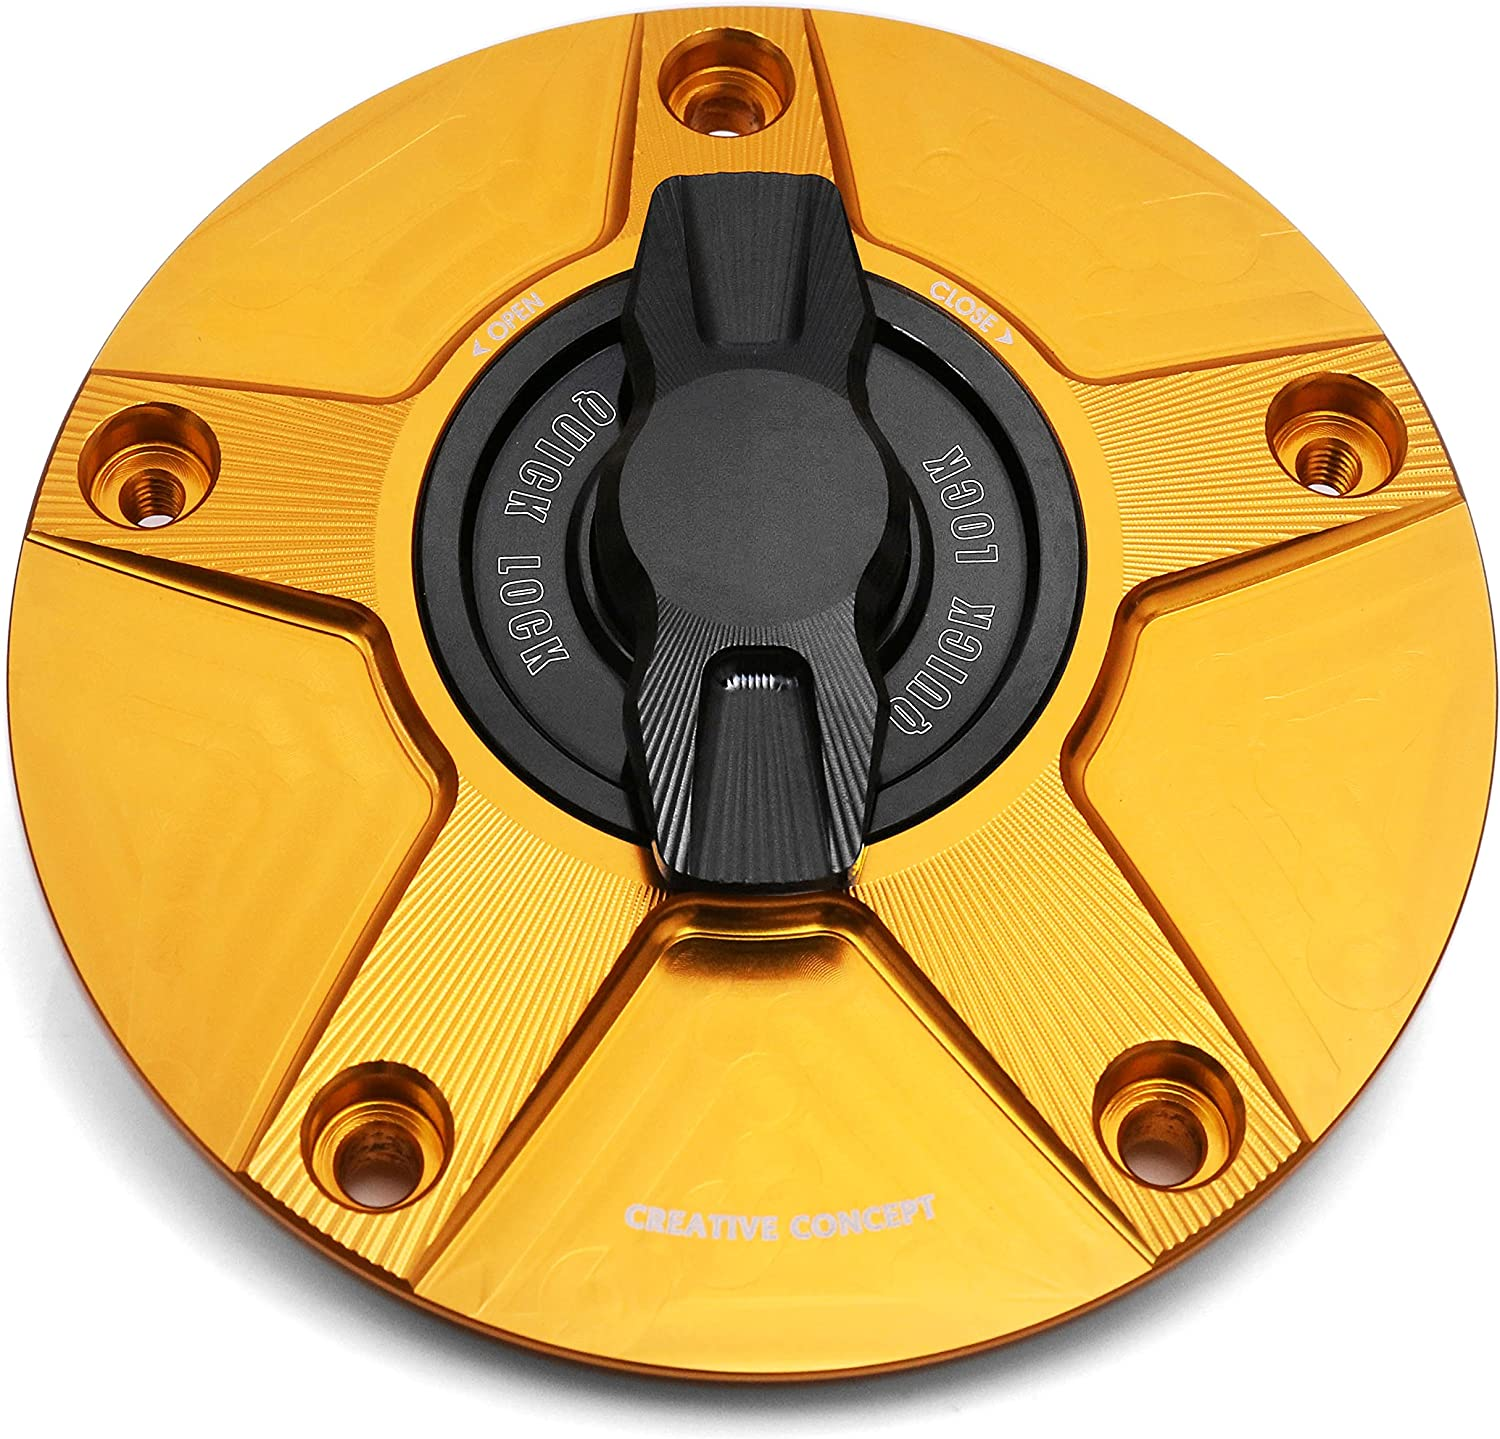 NIMBLE Gold CNC 1/4 Quick Lock Fuel Cap For Kawasaki ZX-6R 2007-2013 NINJA ZX-10R 06-13 08 09 10 11 12